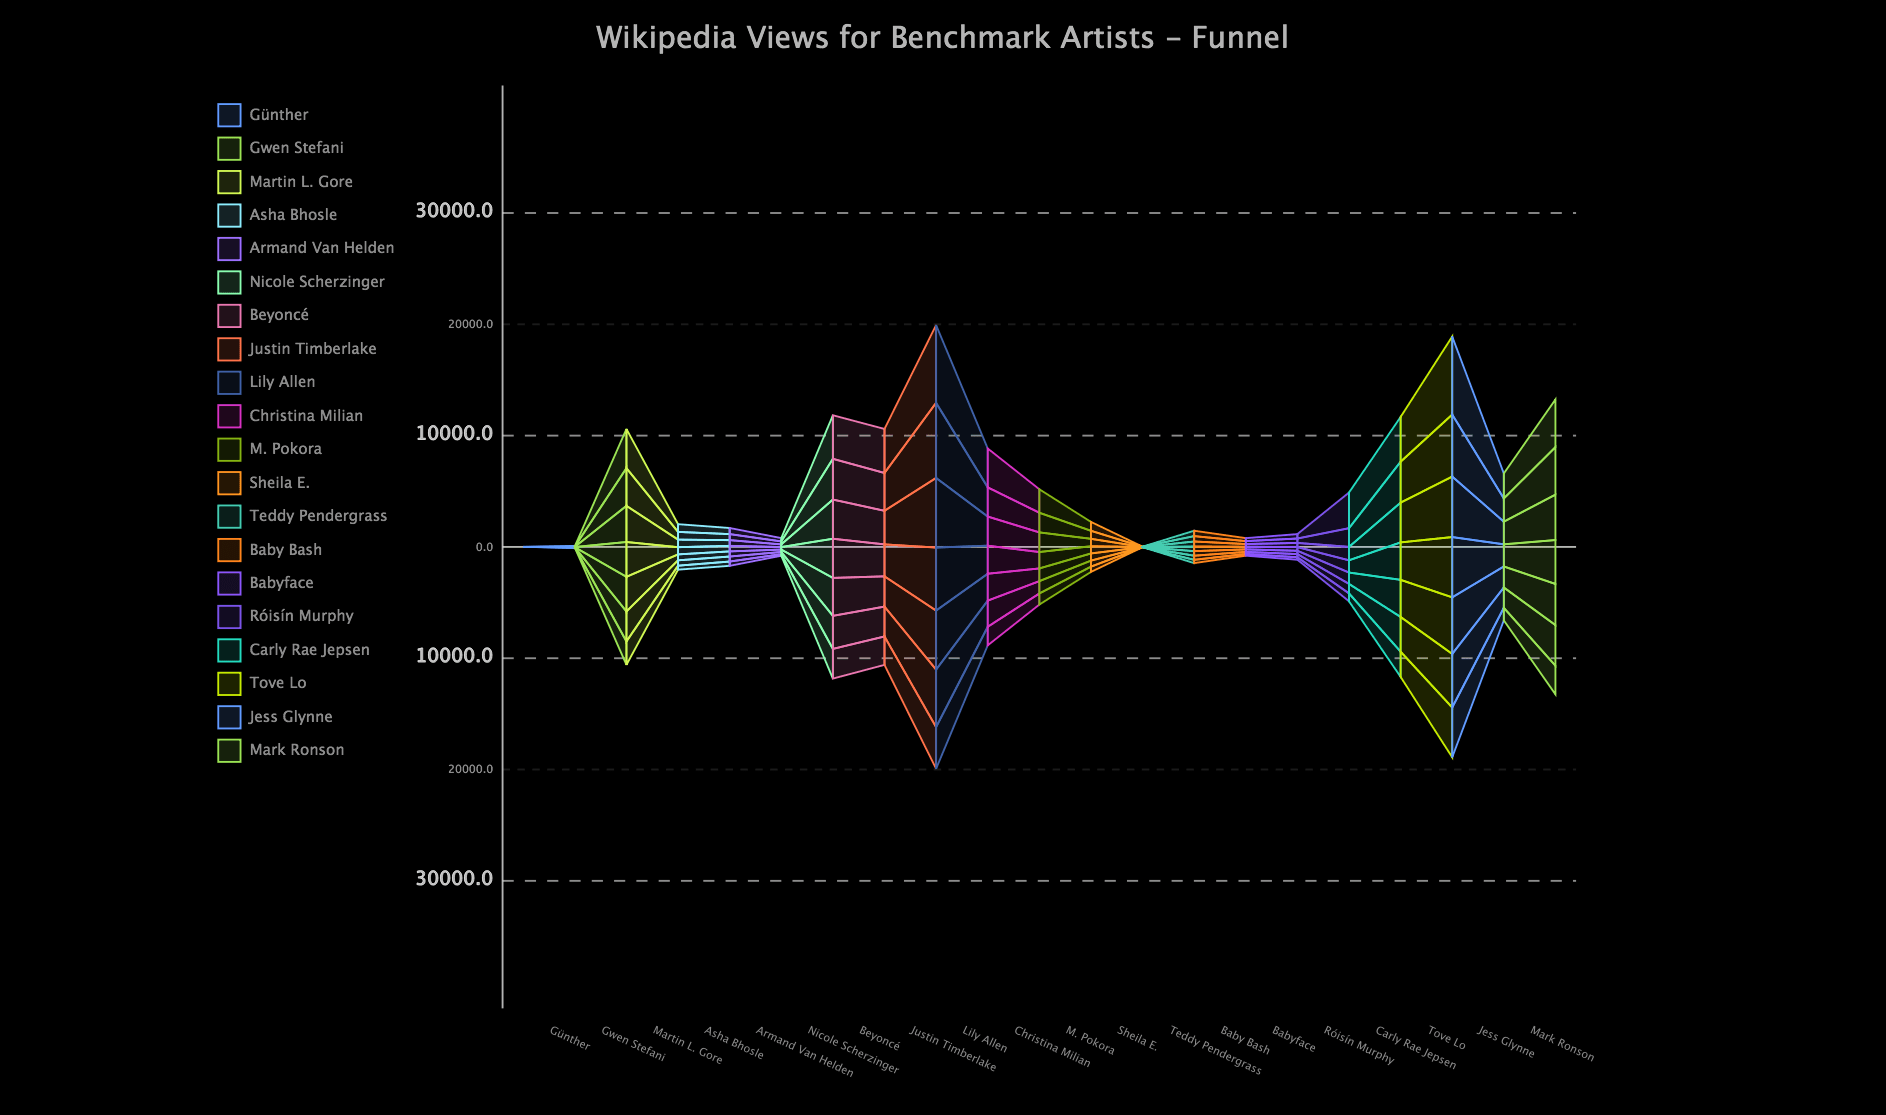 Traktomizer Social Media Metrics - Wikipedia Views for Benchmark Artists